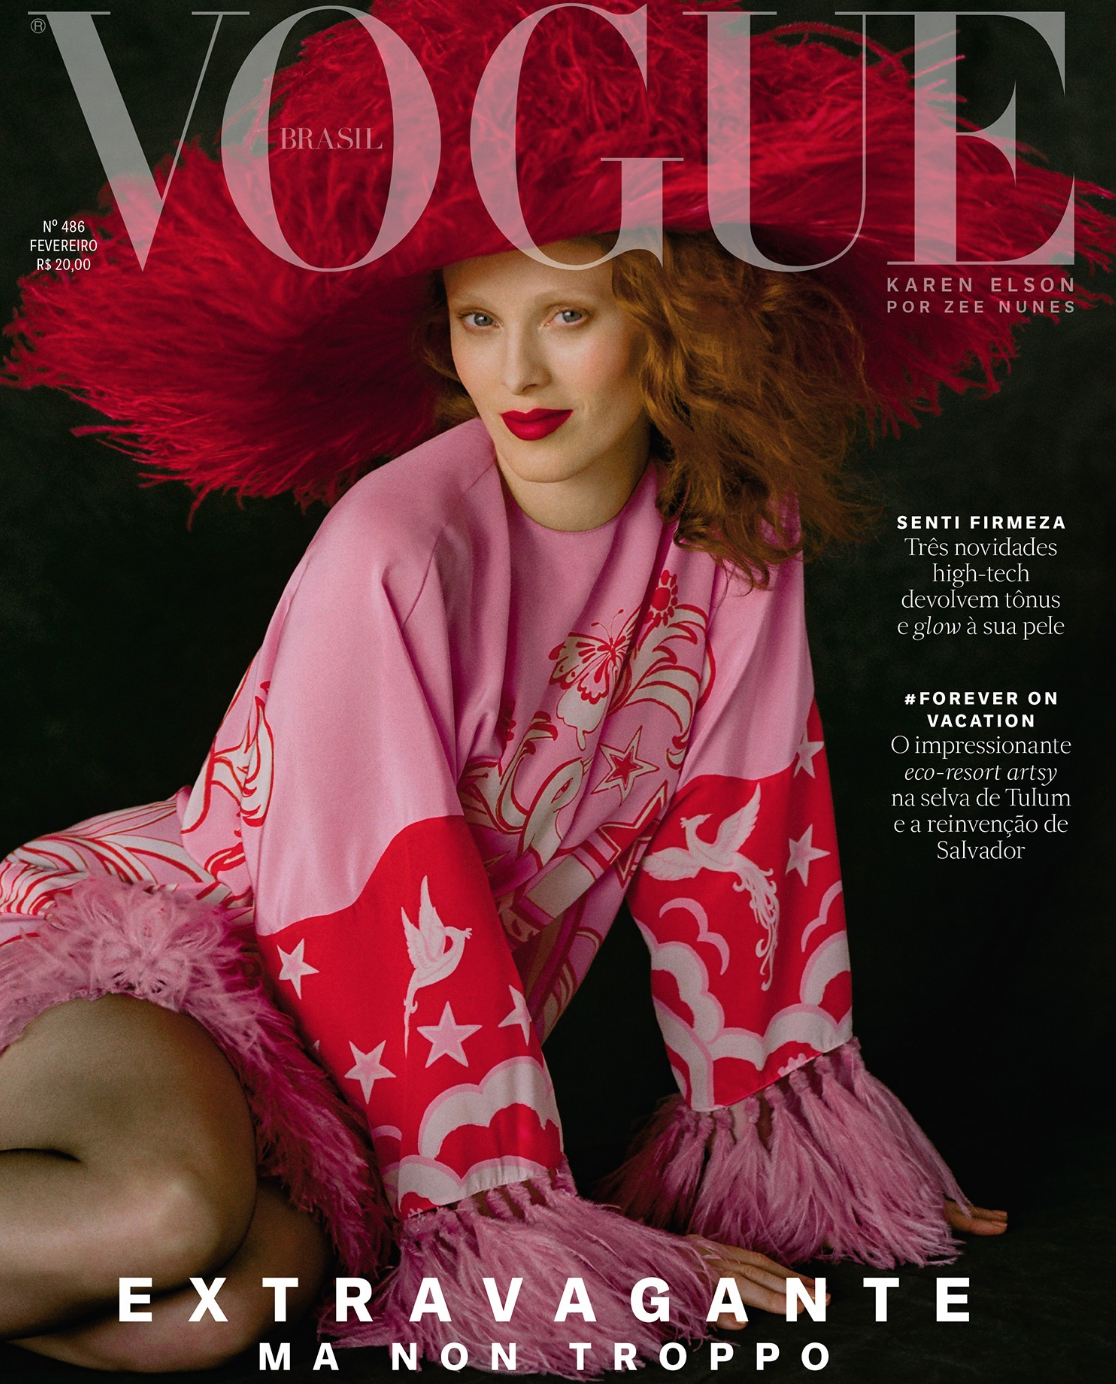 Vogue Brasil - Gisela Gueiros' interview with cover-girl Karen Elson for Vogue Brasil February 2019. More here. Article in Portuguese below.